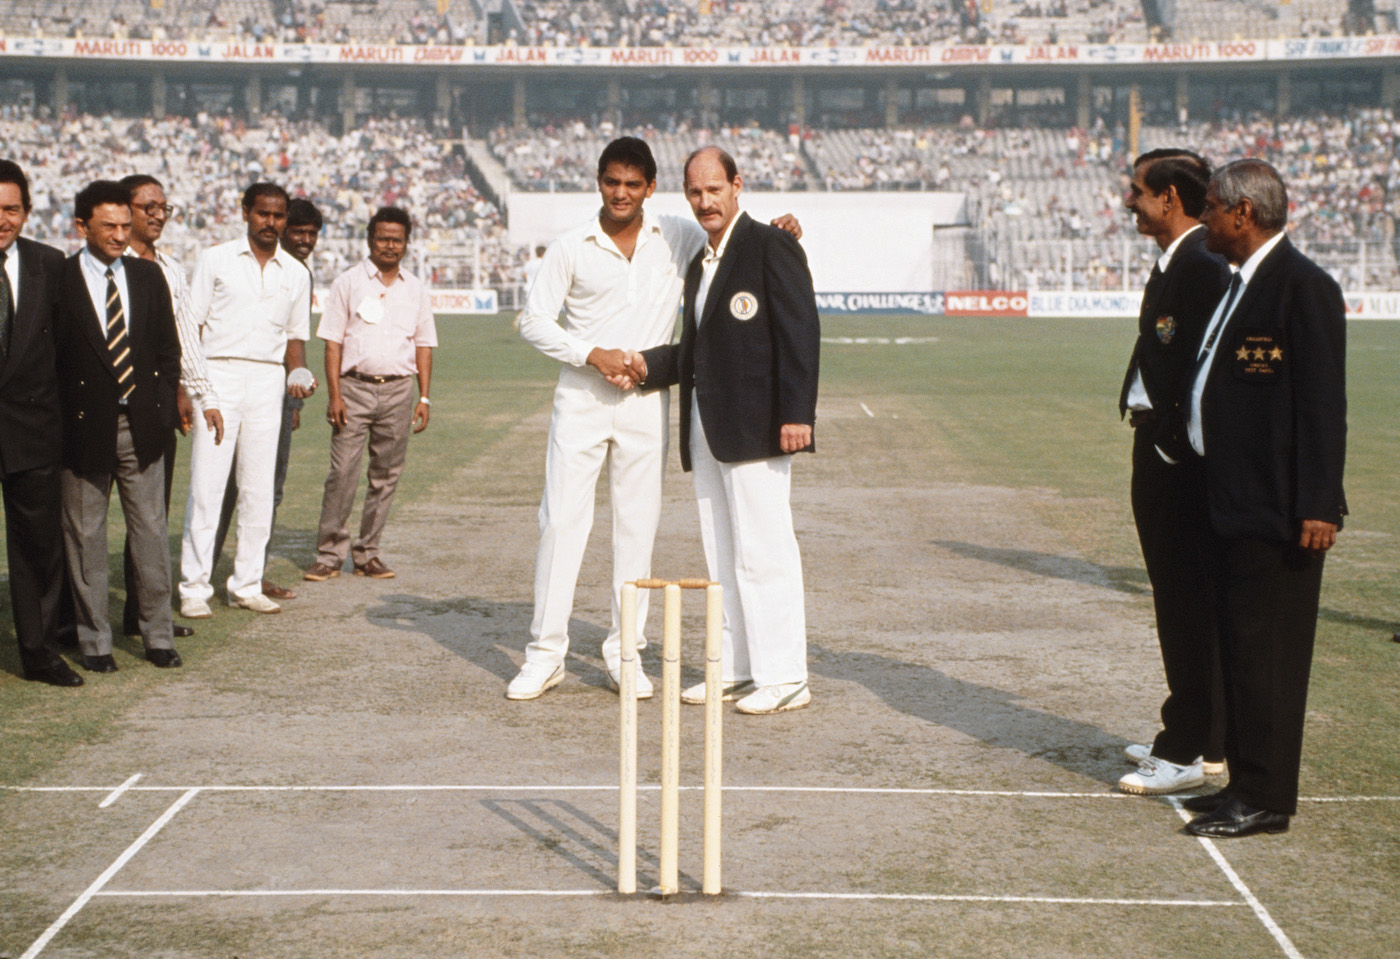 Calcutta 1991: Rice and Azharuddin at the toss. Before the game started, South Africa's captain also released a dozen doves from the middle, and the visiting team took a lap of the ground